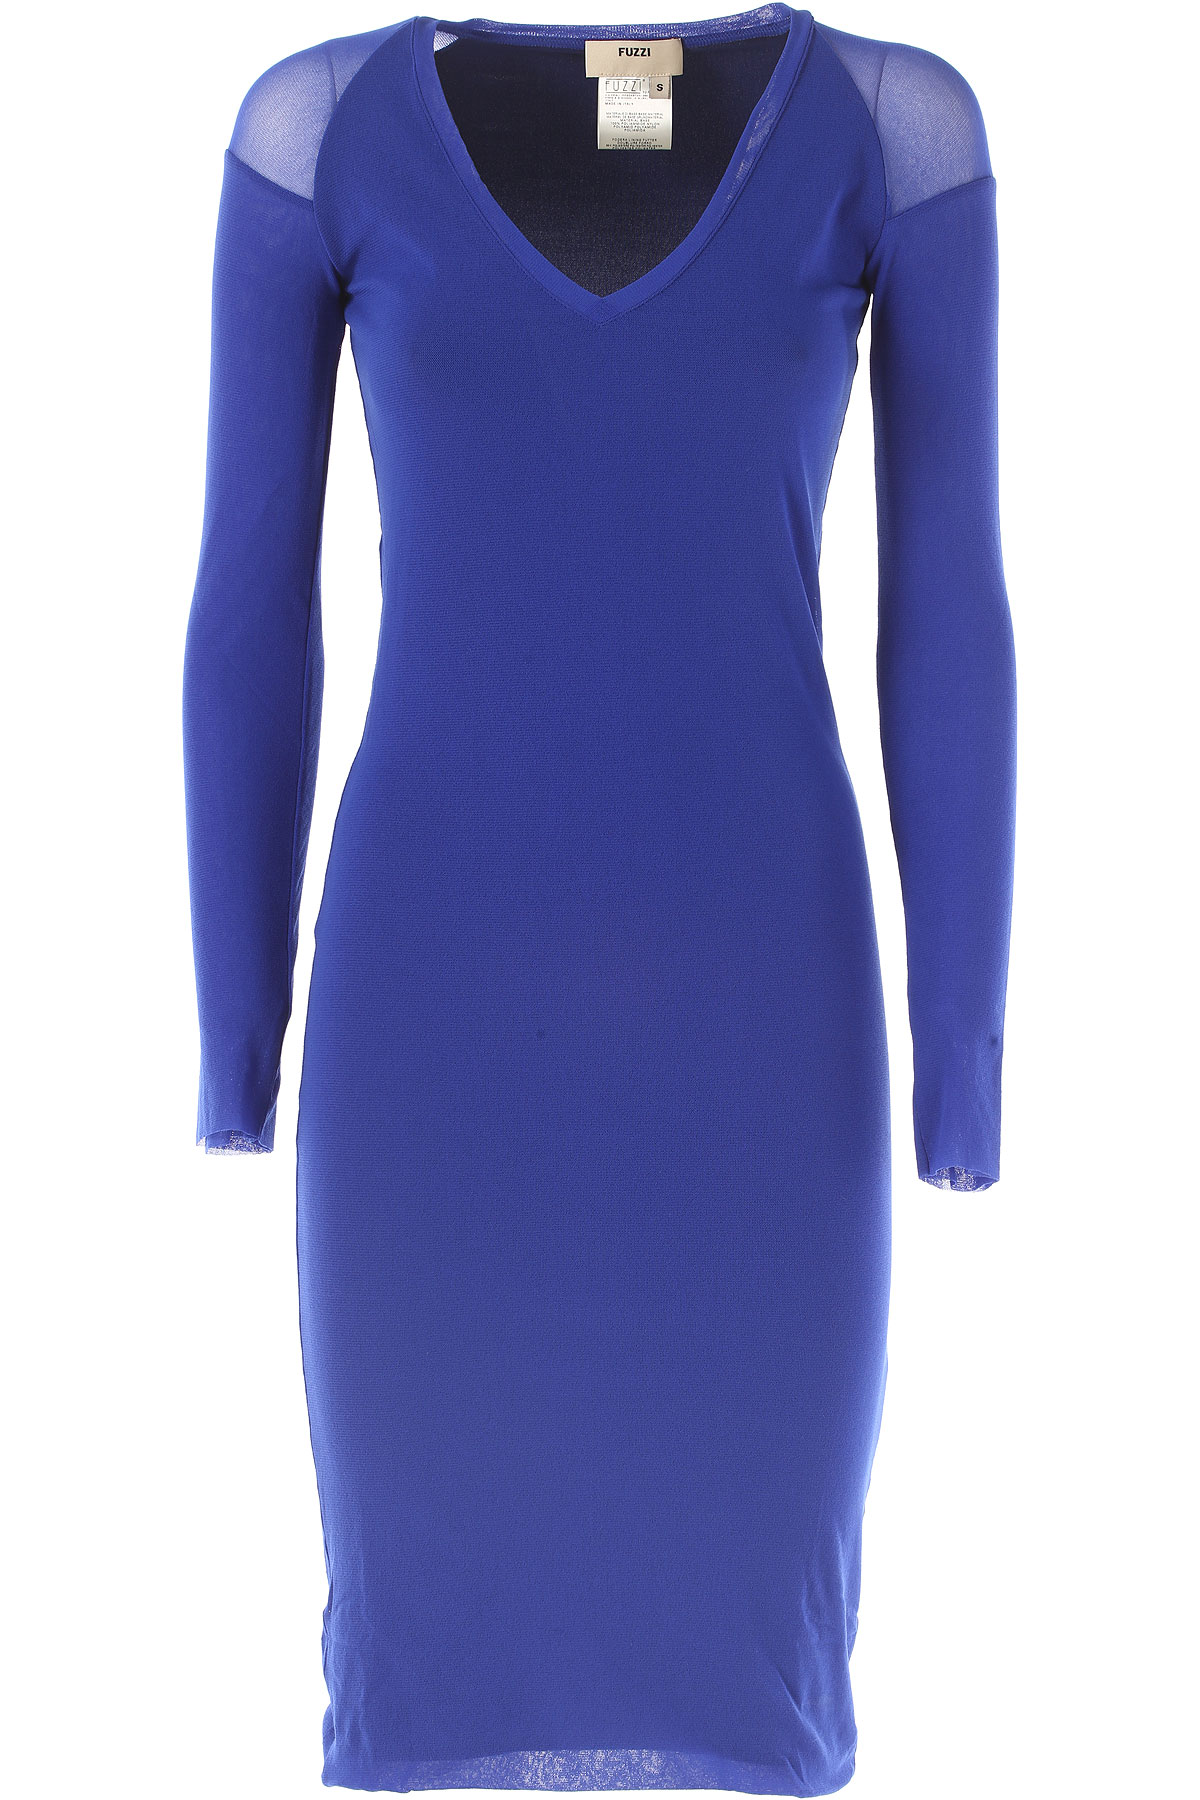 Image of Fuzzi Dress for Women, Evening Cocktail Party On Sale, Blue, polyamide, 2017, 4 8